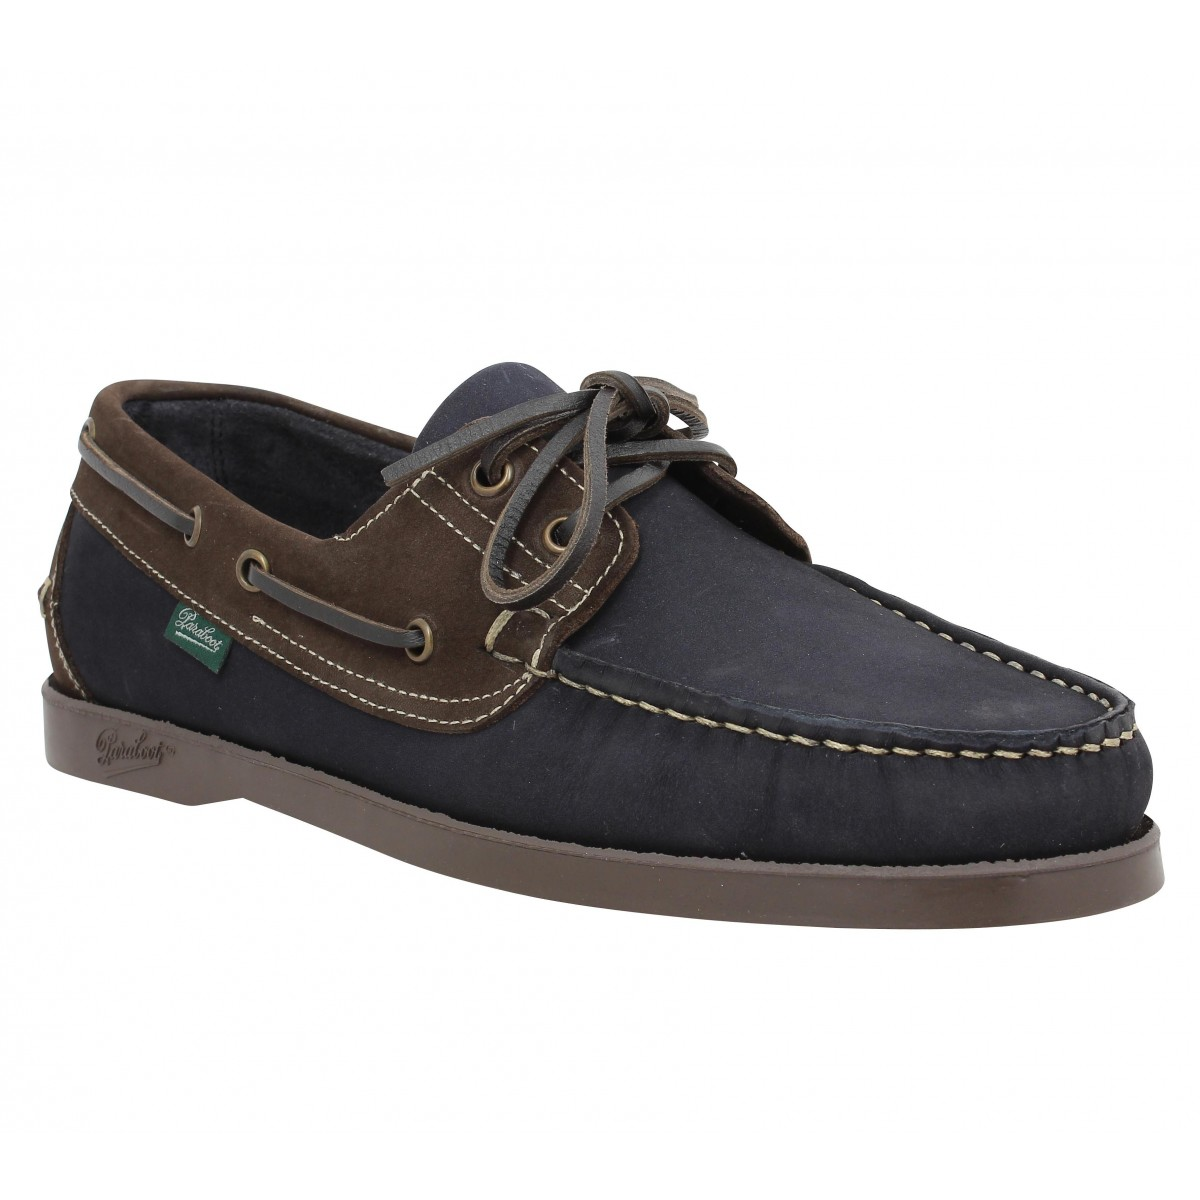 Chaussures bateaux PARABOOT Barth velours Homme Marine + Marron